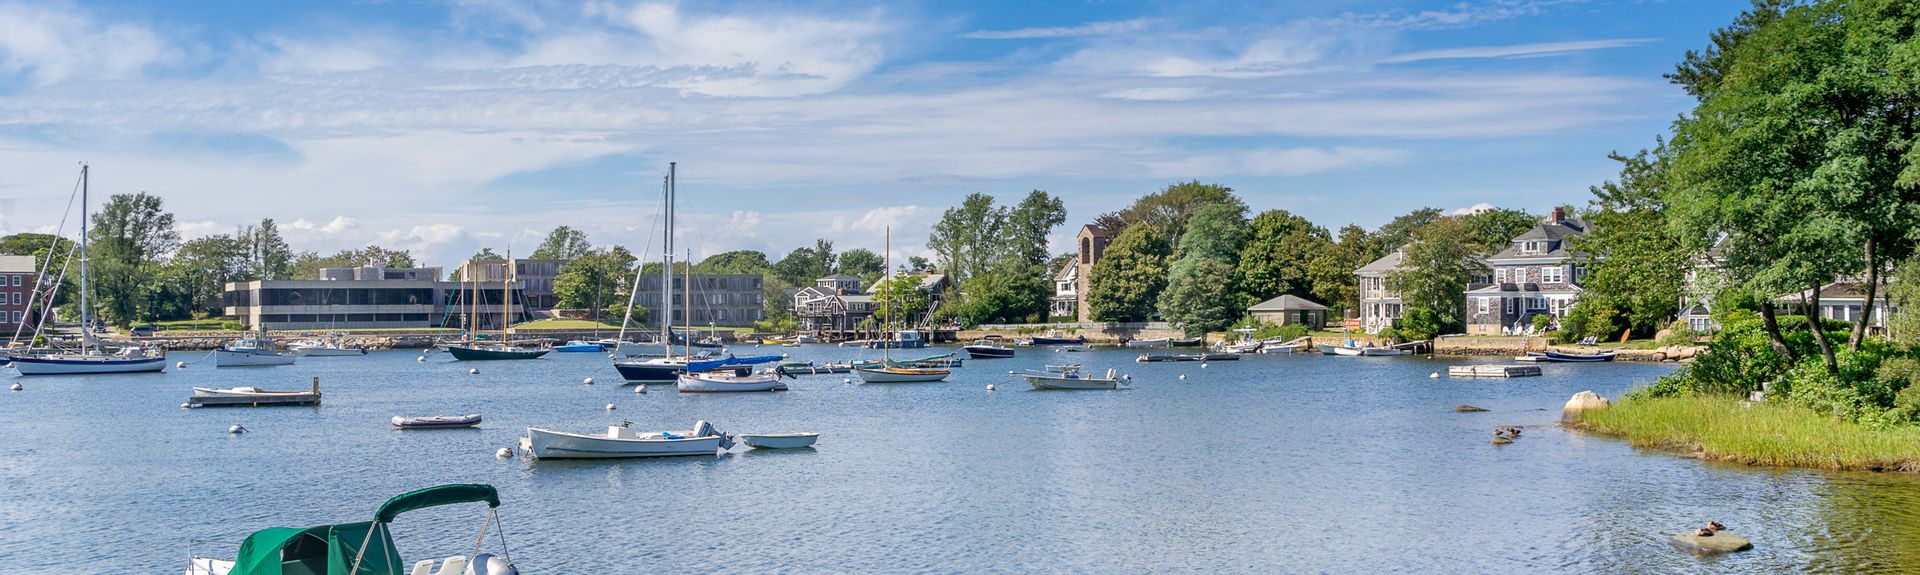 Woods Hole, Falmouth, Massachusetts, États-Unis d'Amérique